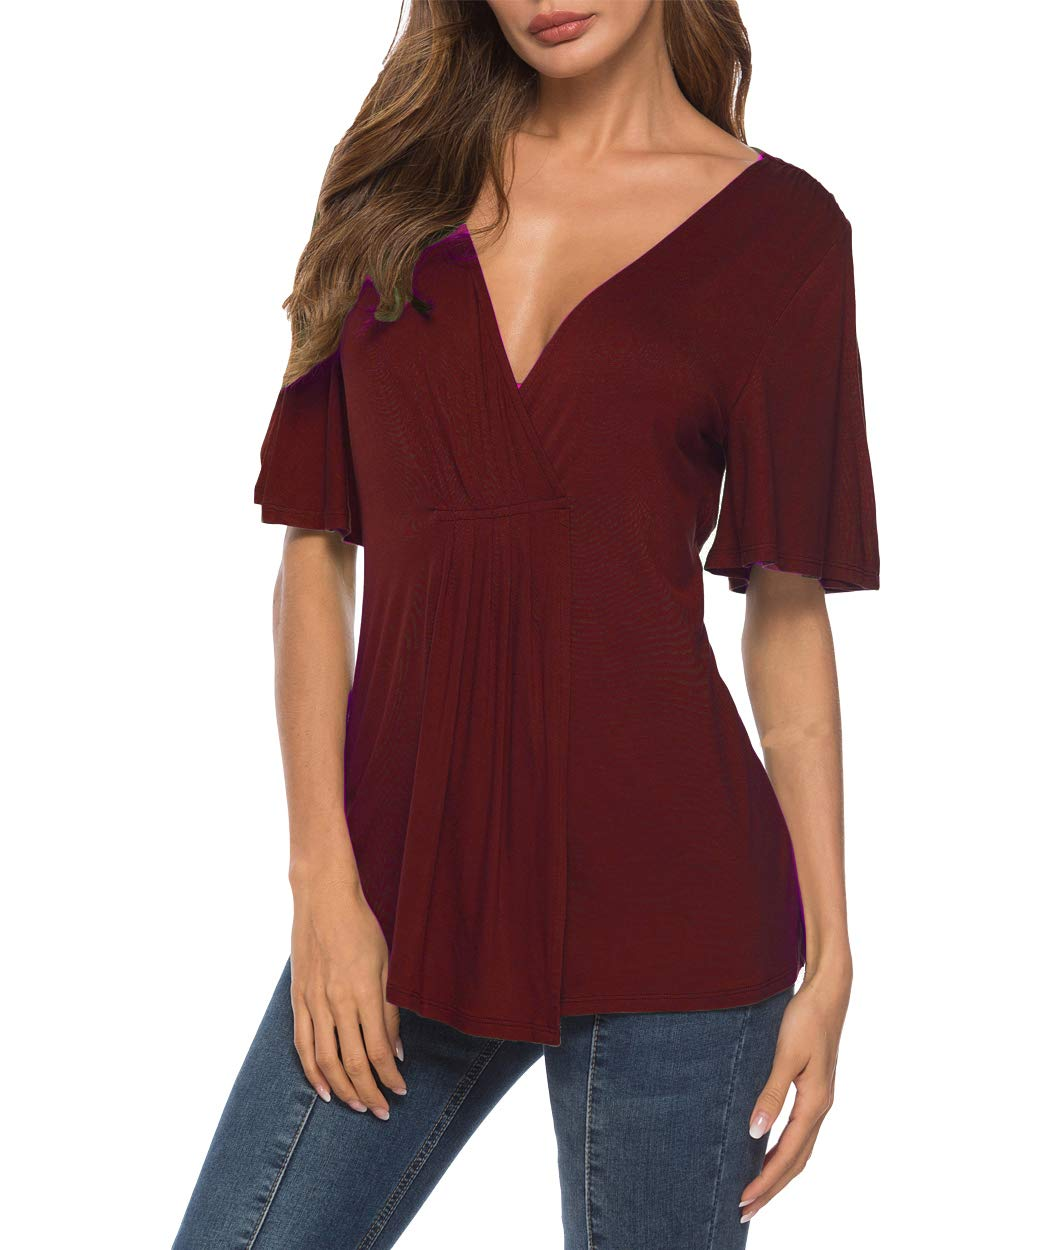 Eanklosco V Neck Shirts Womens Sexy Short Sleeve Cold Shoulder Tops Unique Ruffle Front Side Slit T Shirts (M, Wine Red)